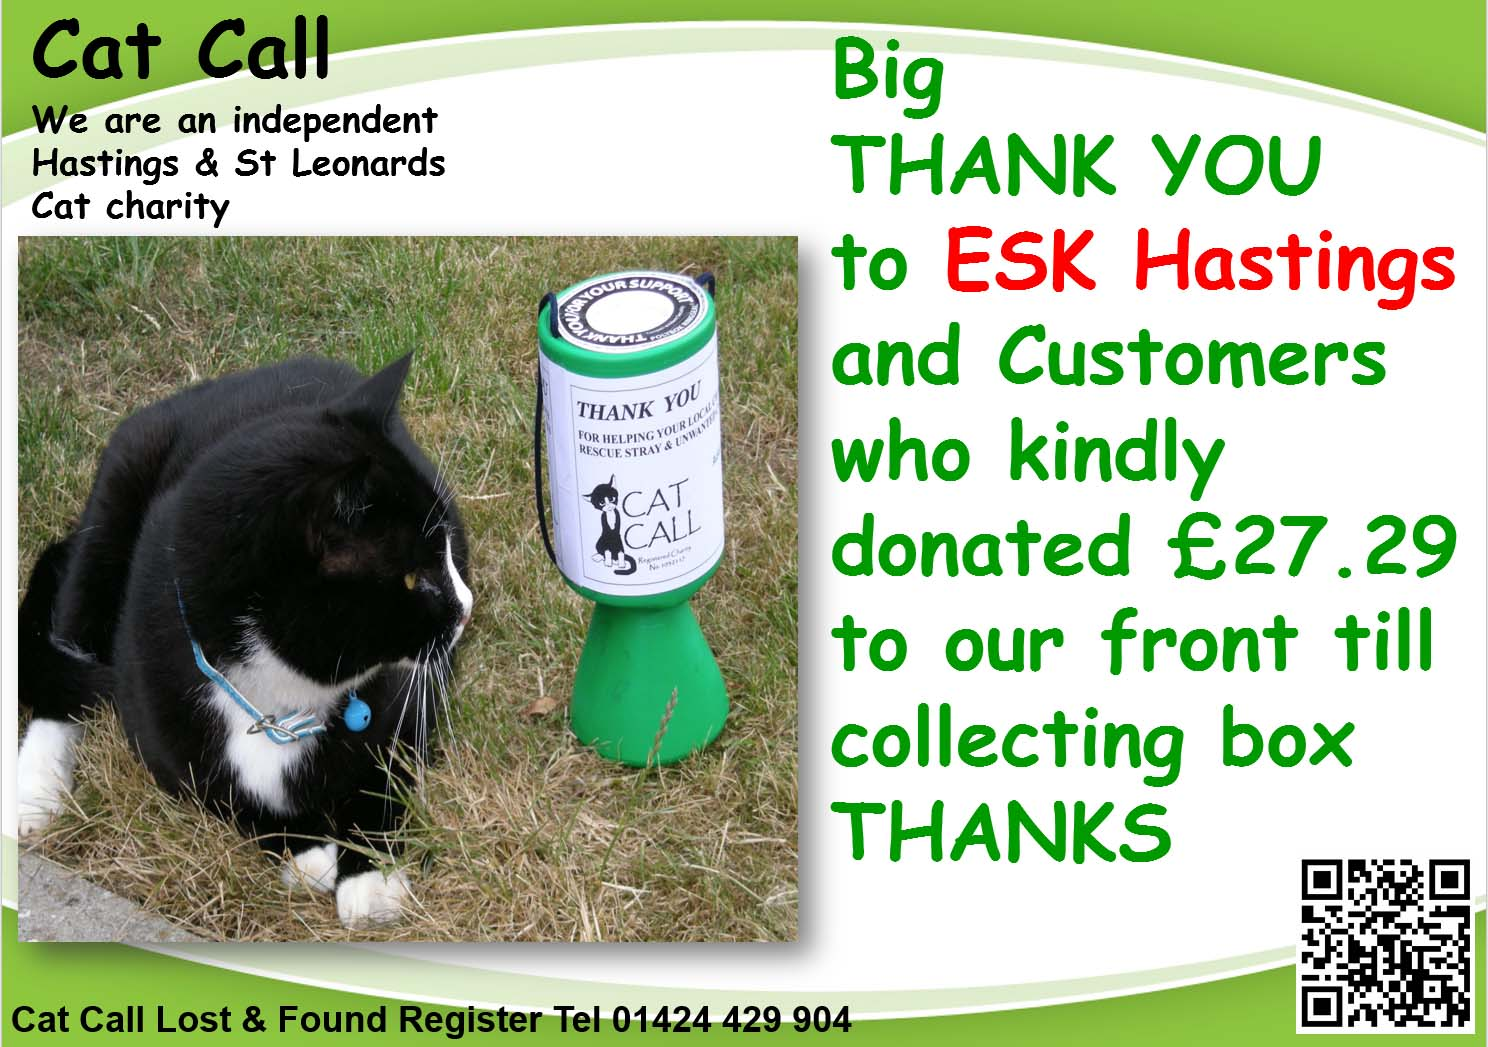 Thank you ESK Hastings